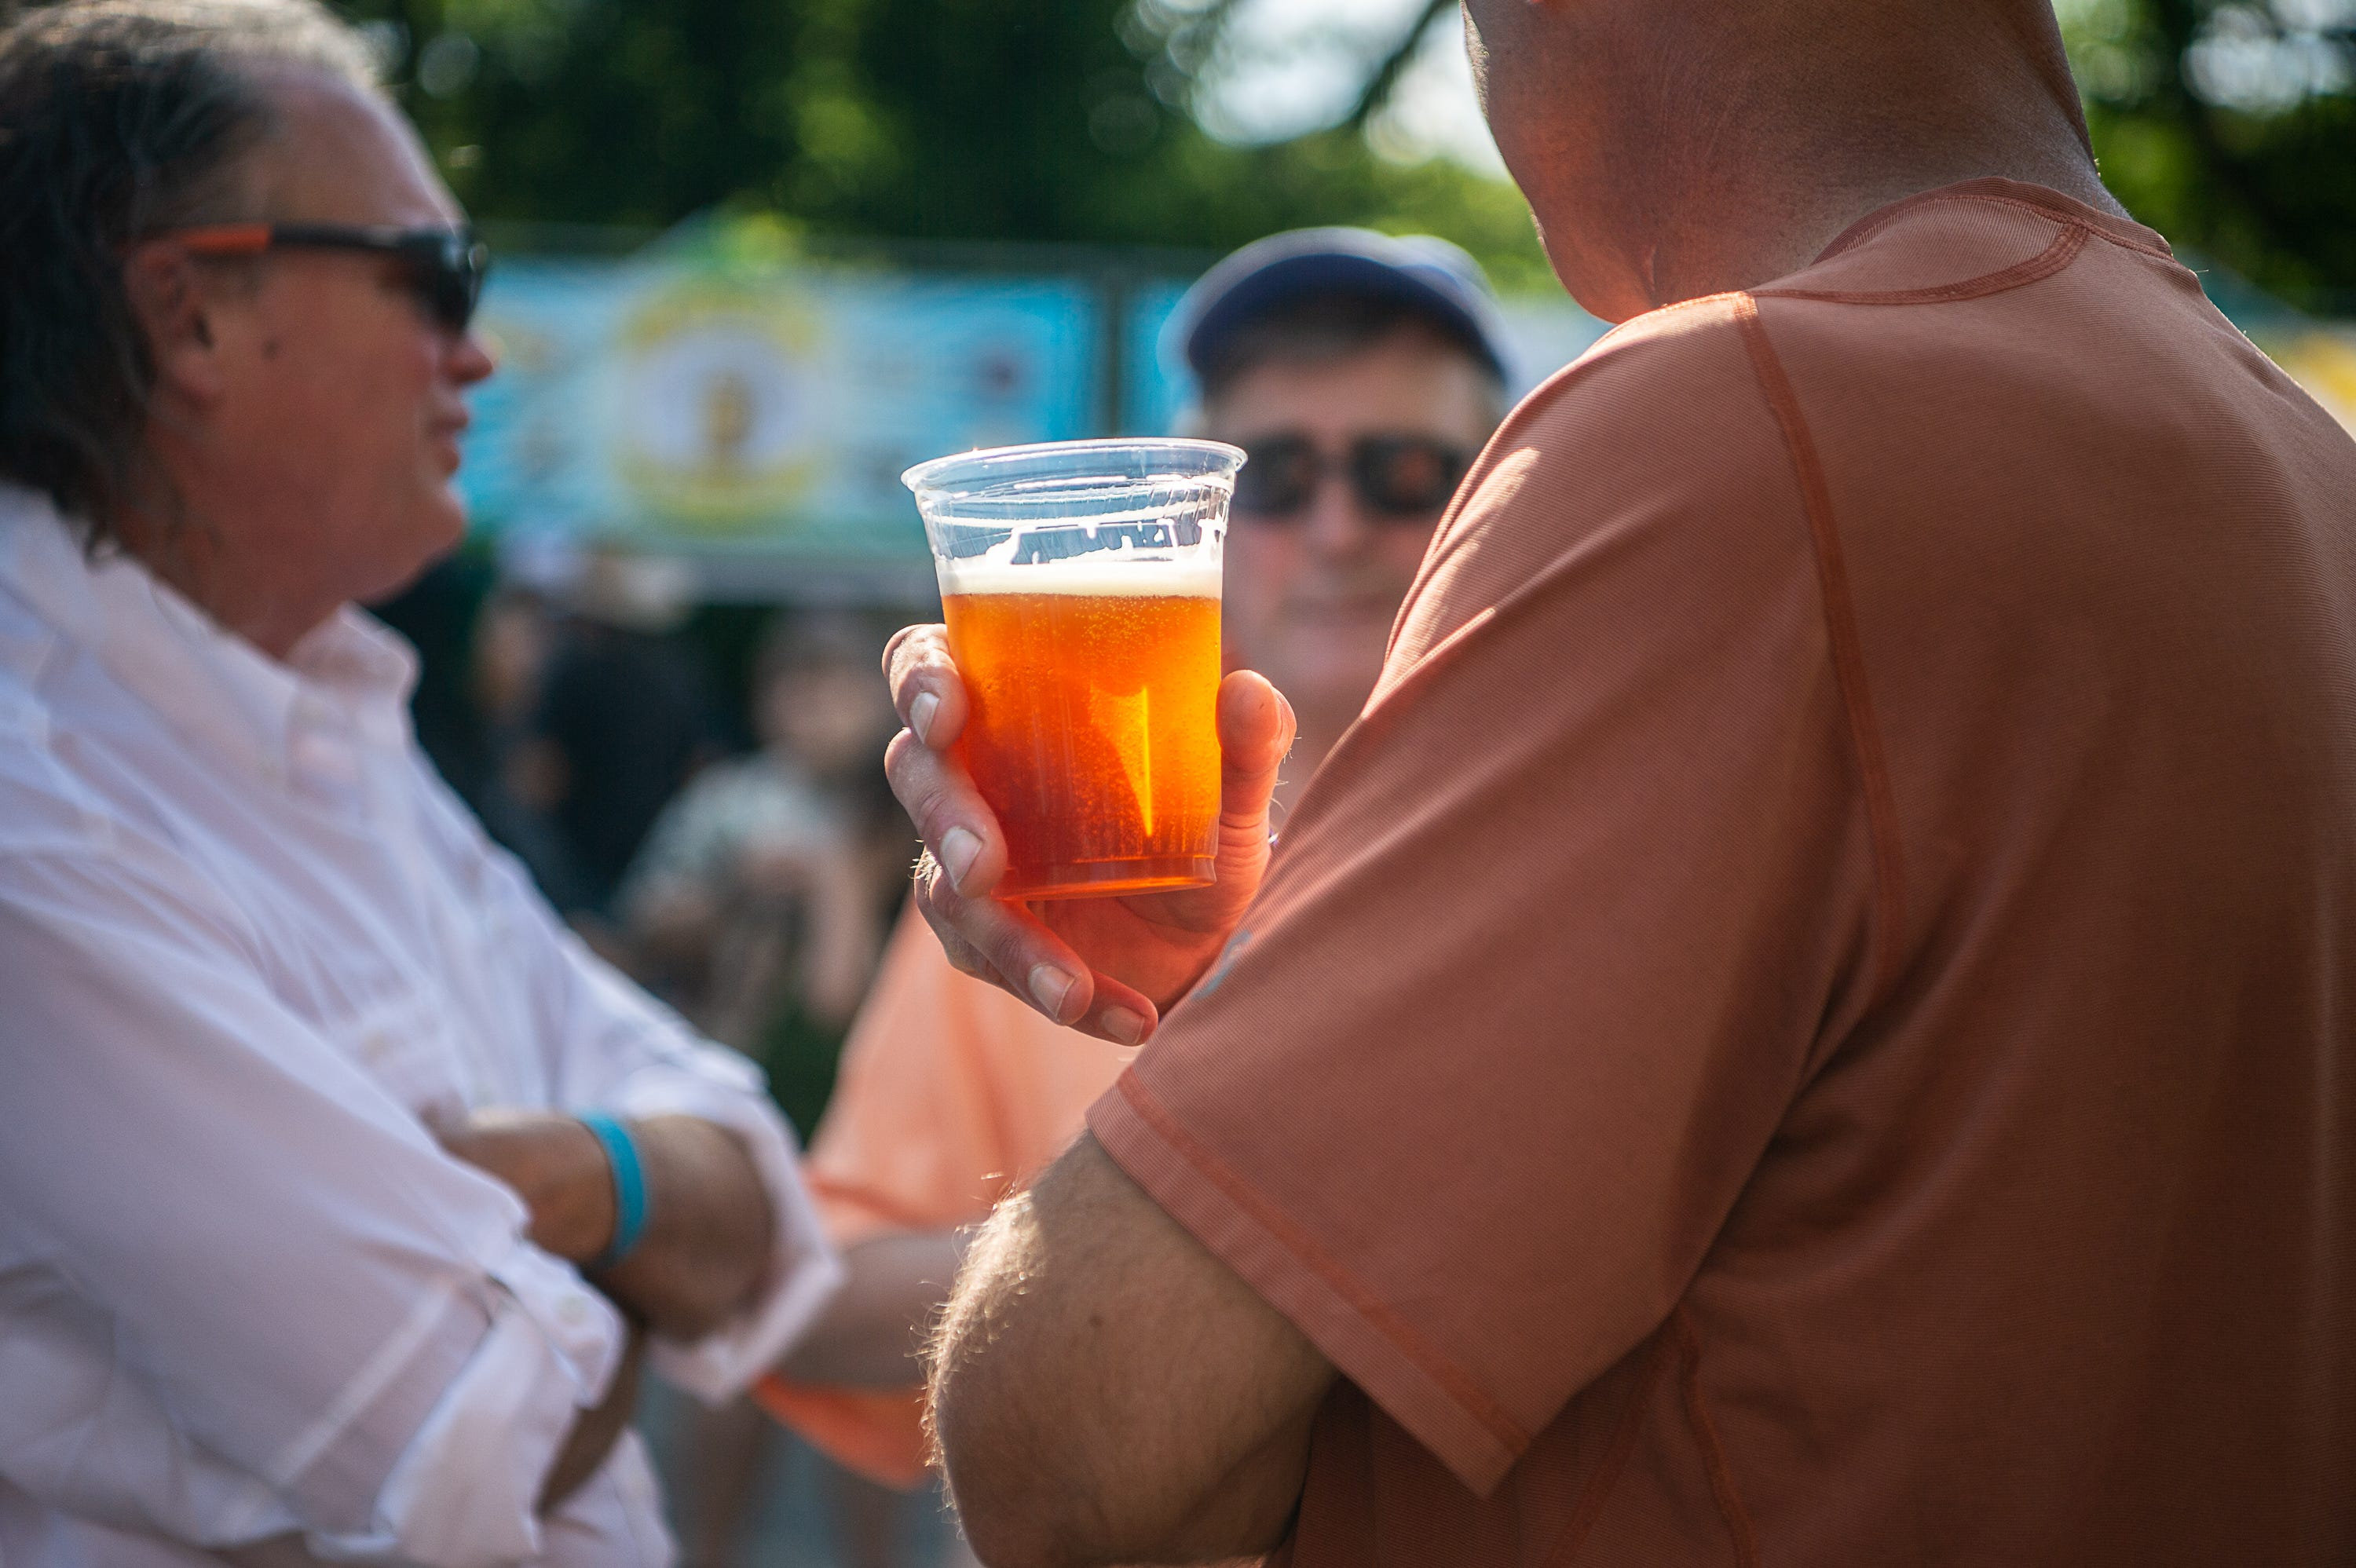 citizen-times.com - Mackensy Lunsford, The Asheville Citizen Times - Asheville 'best destination in the world for beer-lovers to visit,' says online service